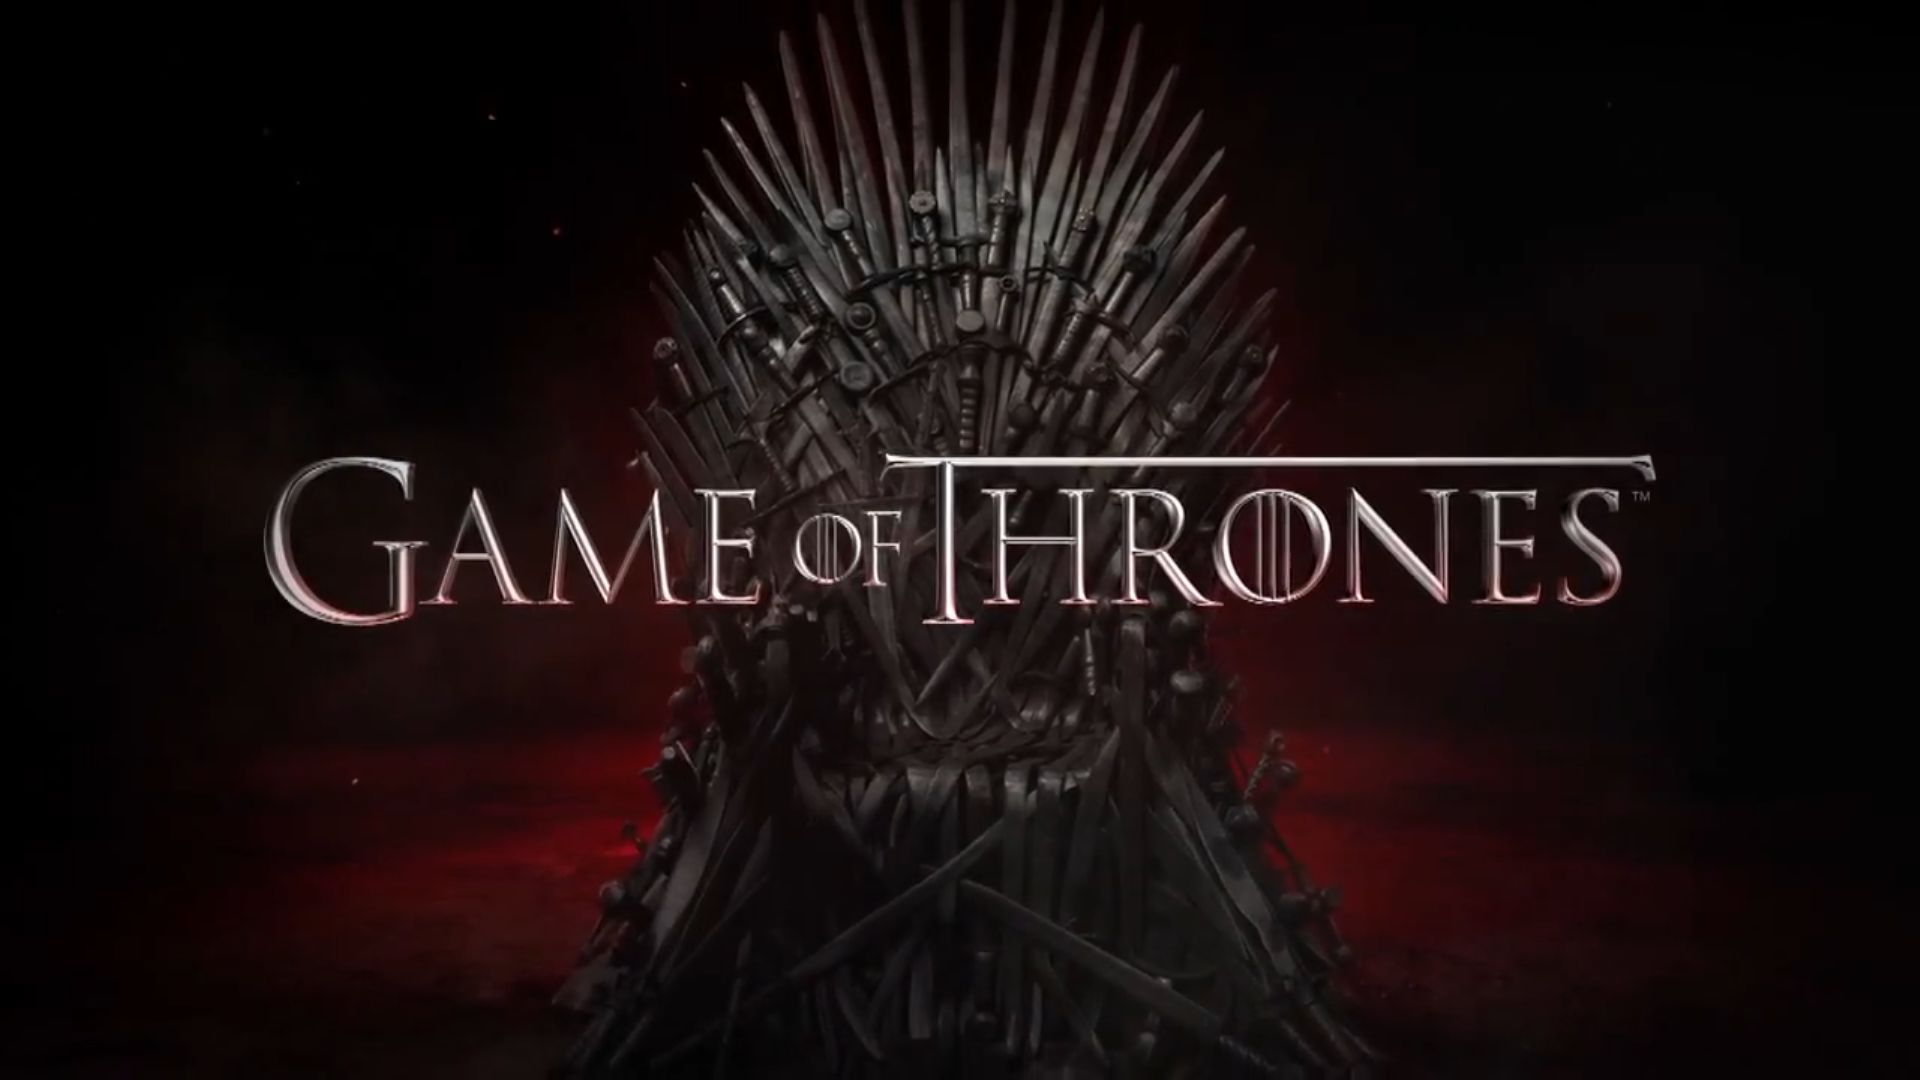 'The 4th Kingdom' being developed by Vince Gerardis the Excutive Producer of 'Game of Thrones'